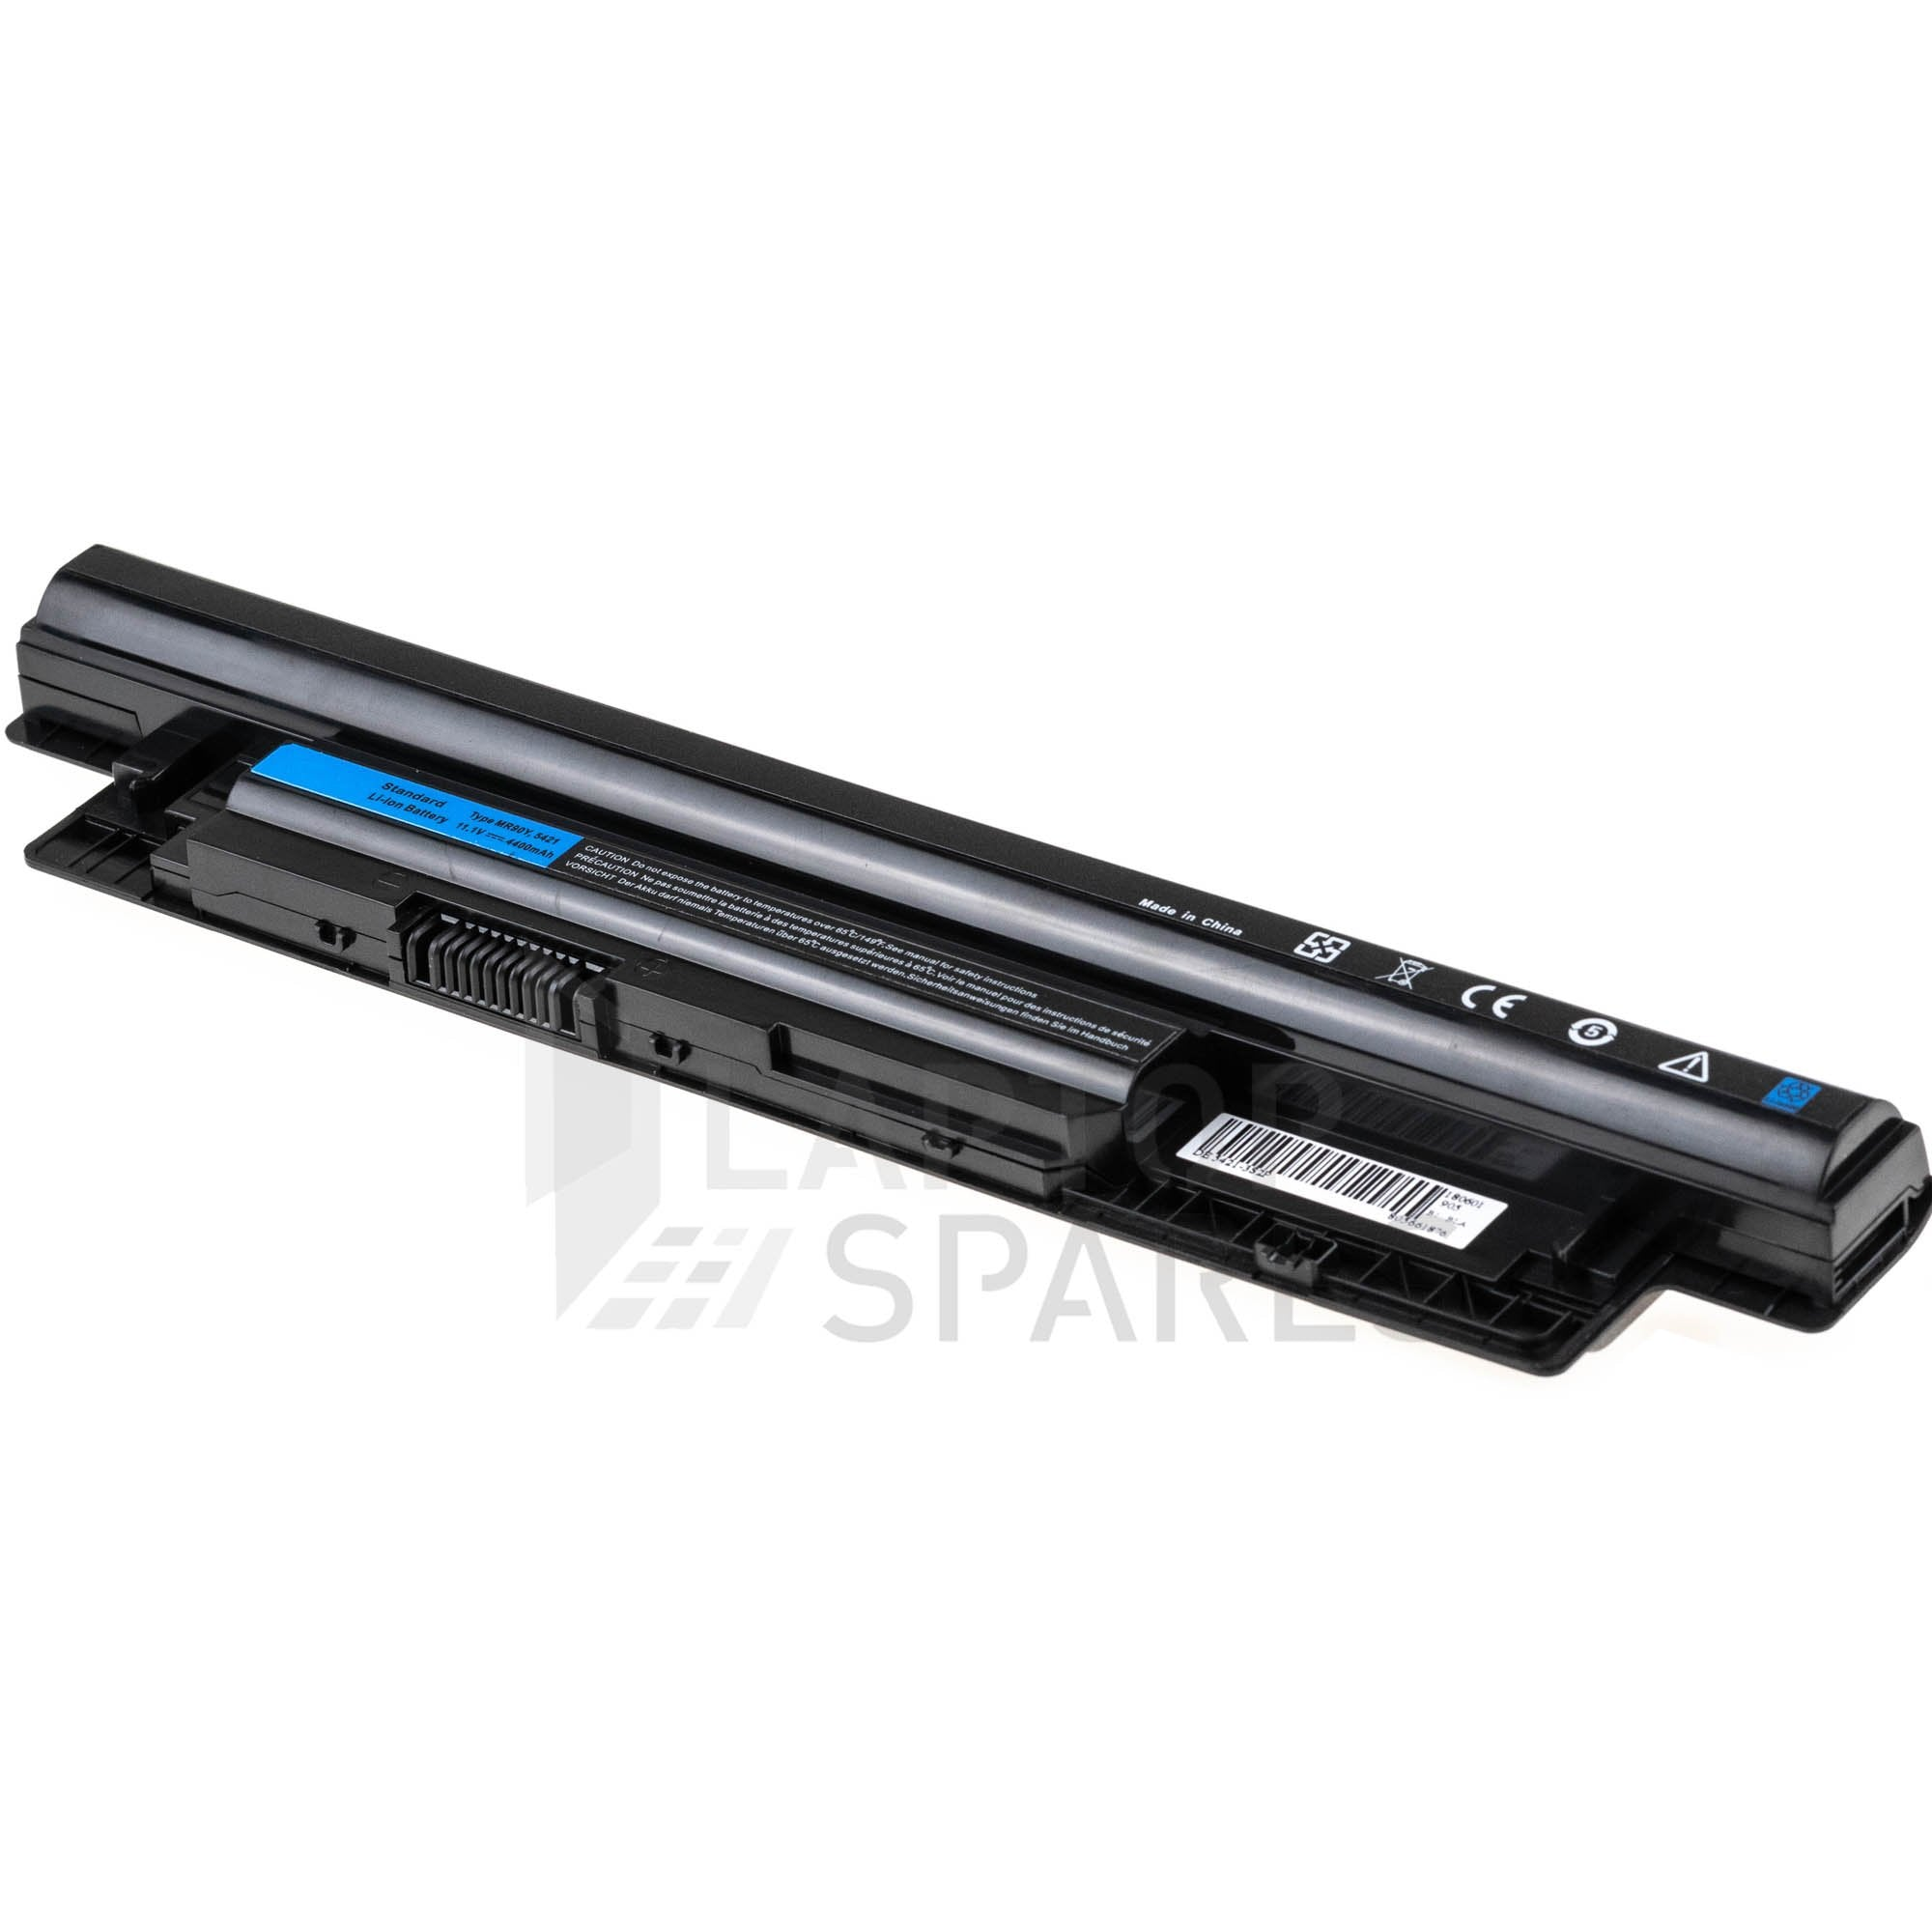 Dell Inspiron 14VD A516 4400mAh 6 Cell Battery